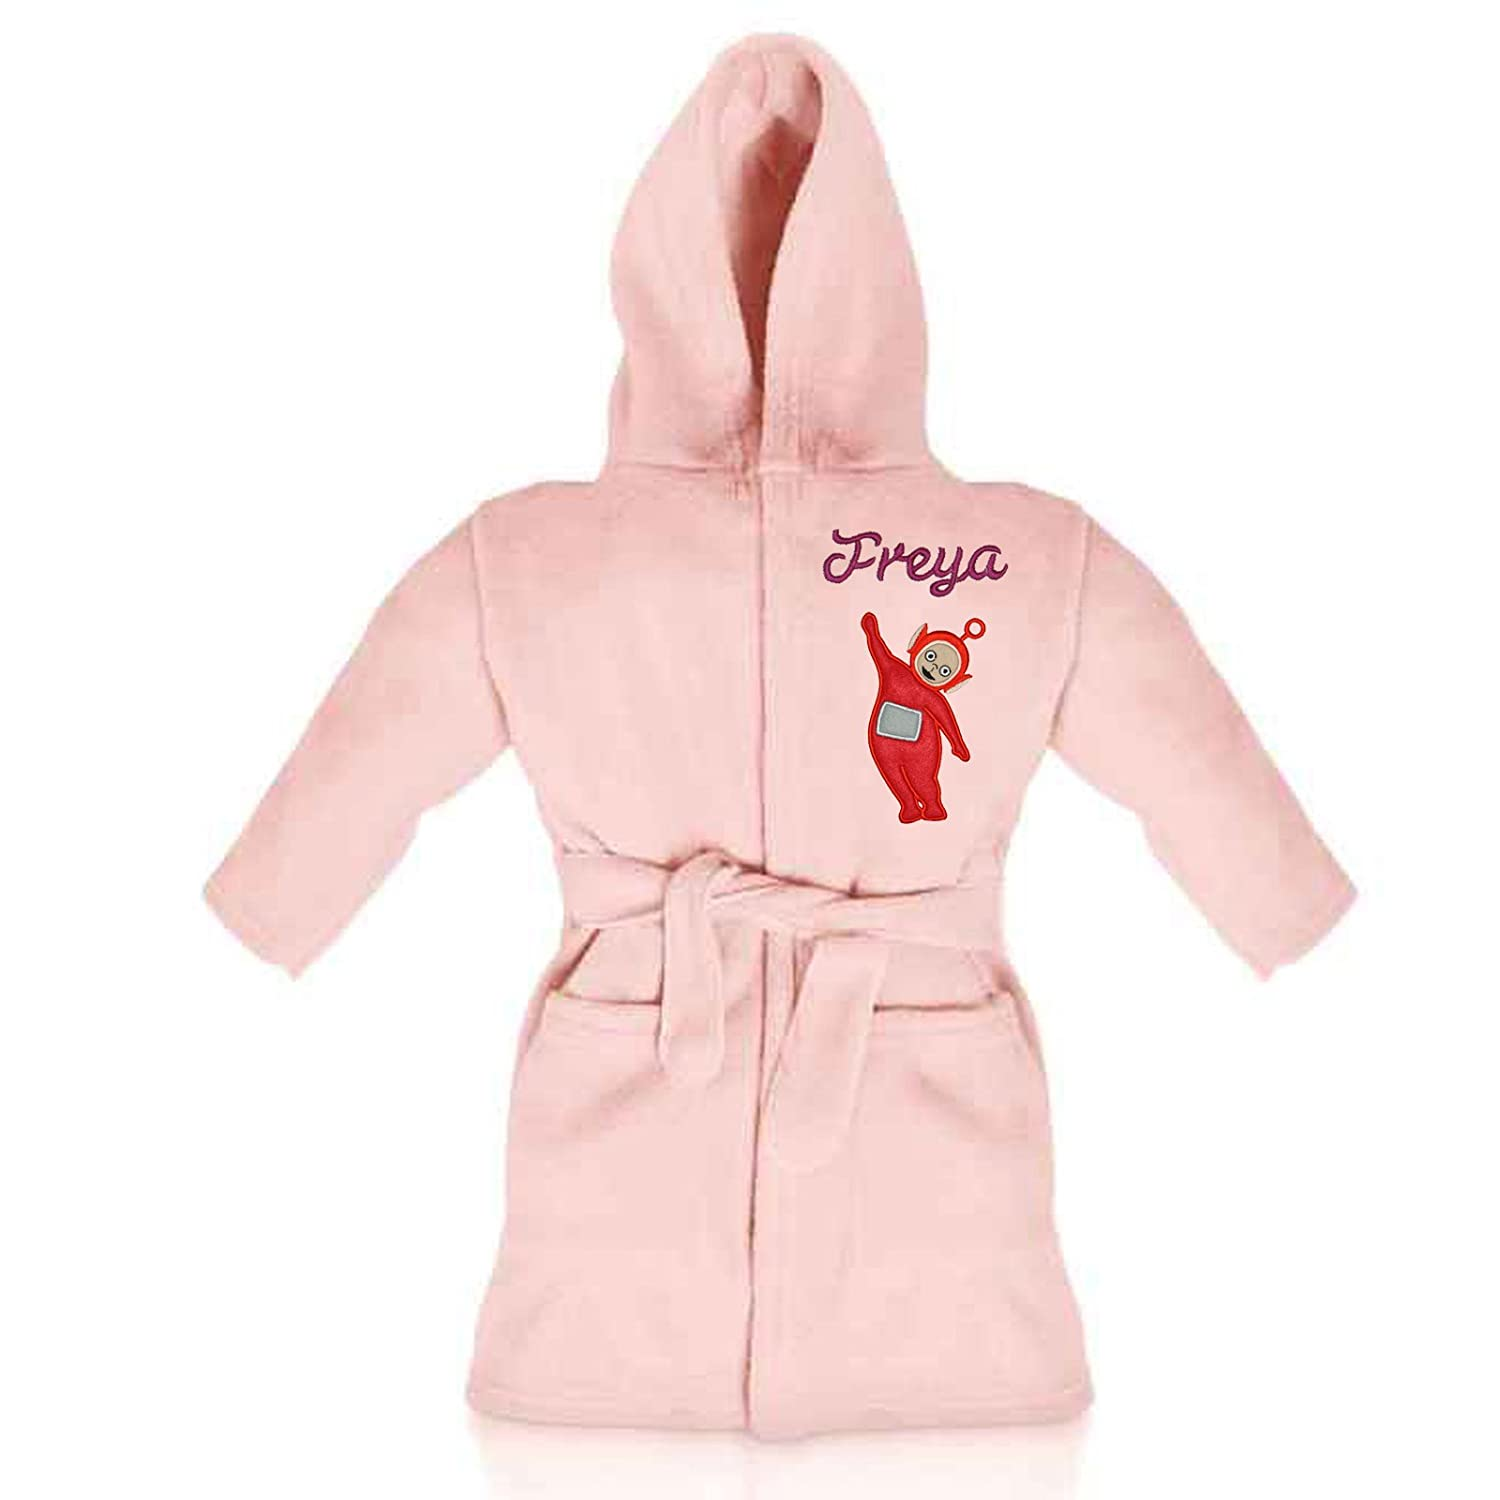 Oh Sew Simple Po (Teletubbies) Personalised Fleece Dressing Gown/Bathrobe (Pink) Teletubbies - Po